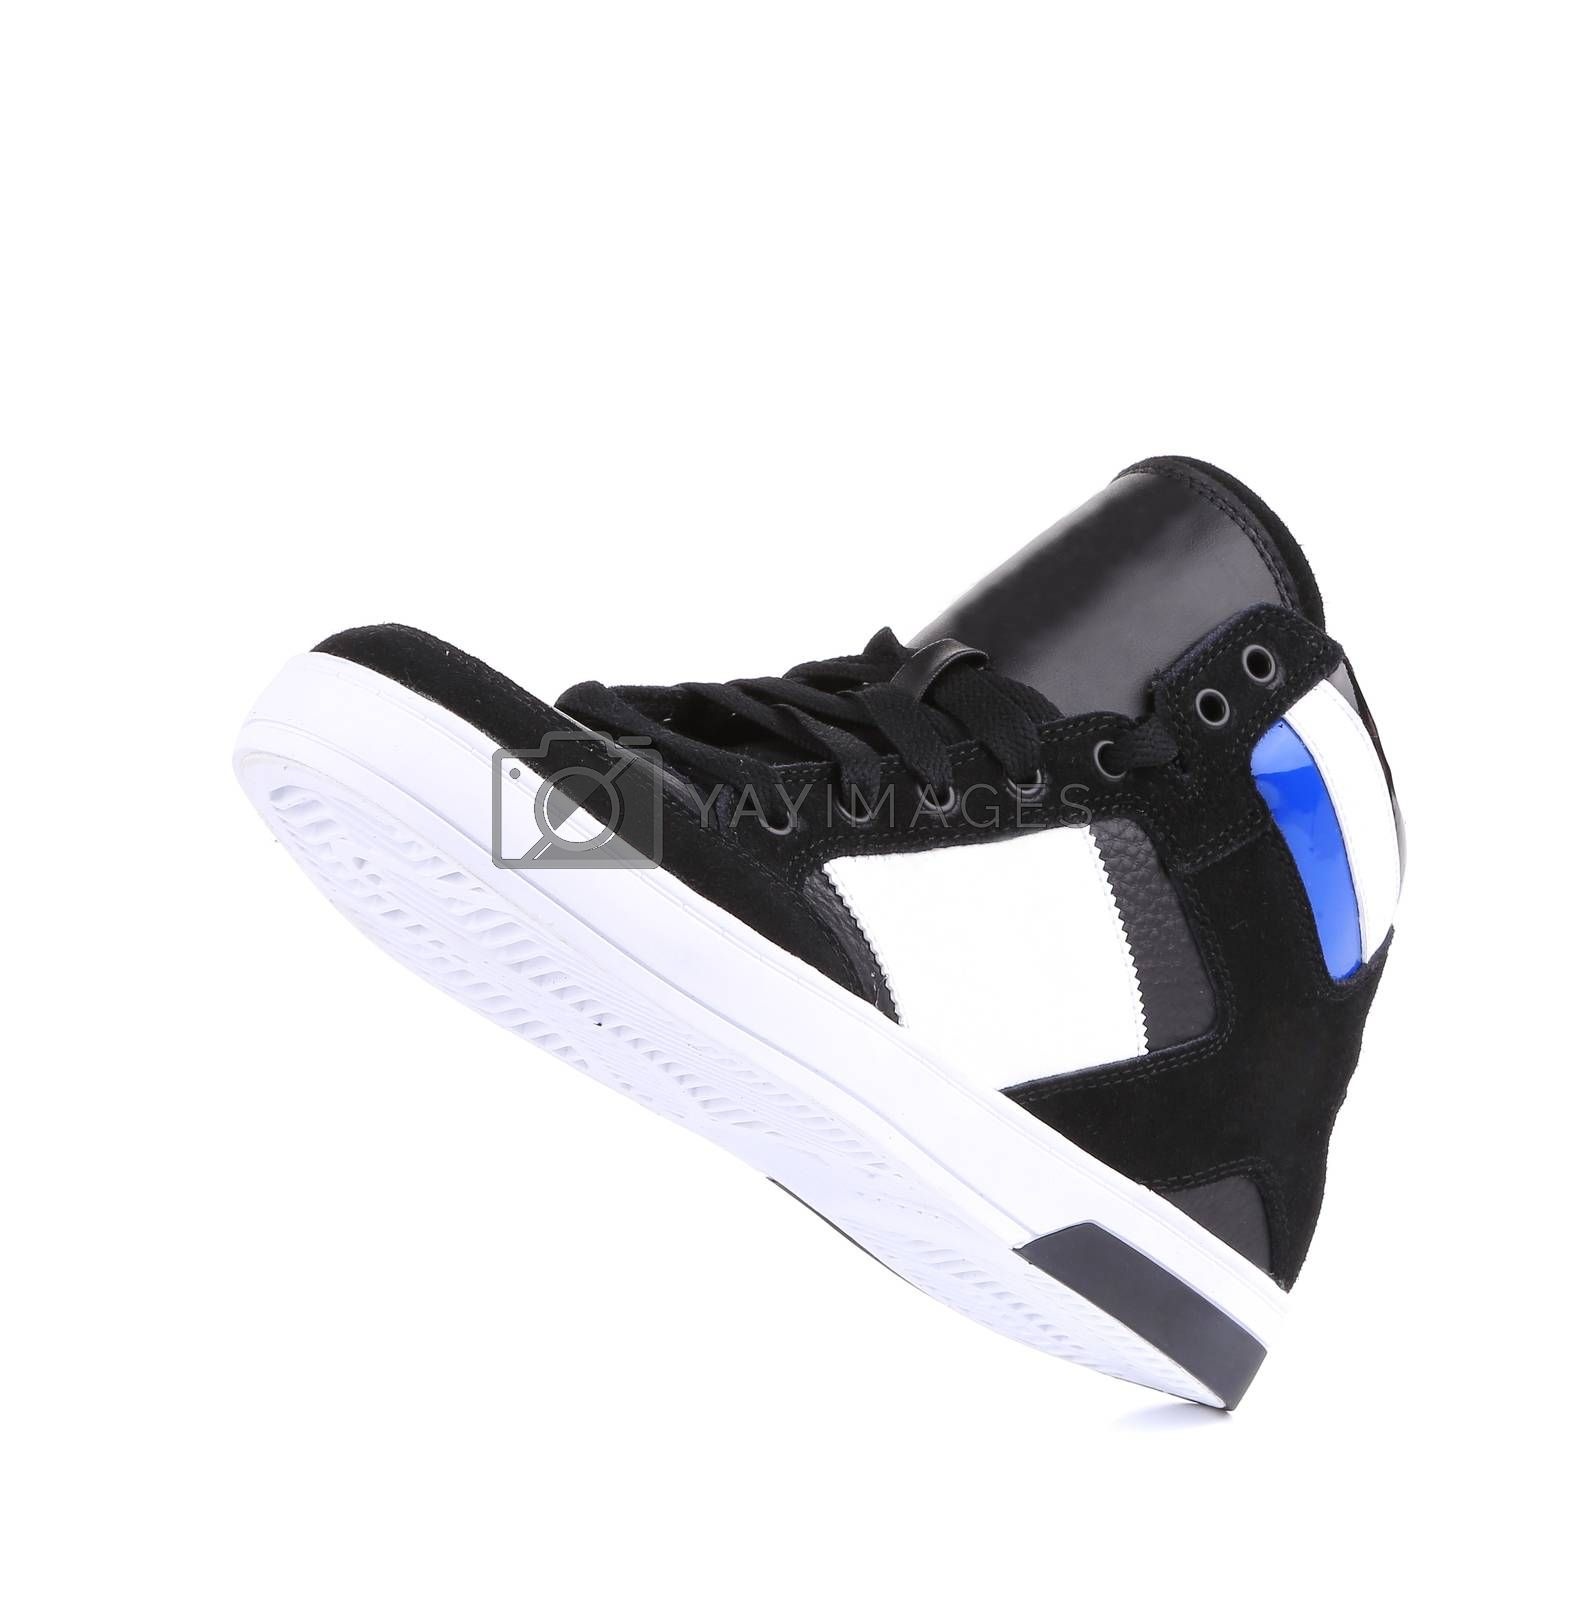 Fashion sneaker. Isolated on a white background.